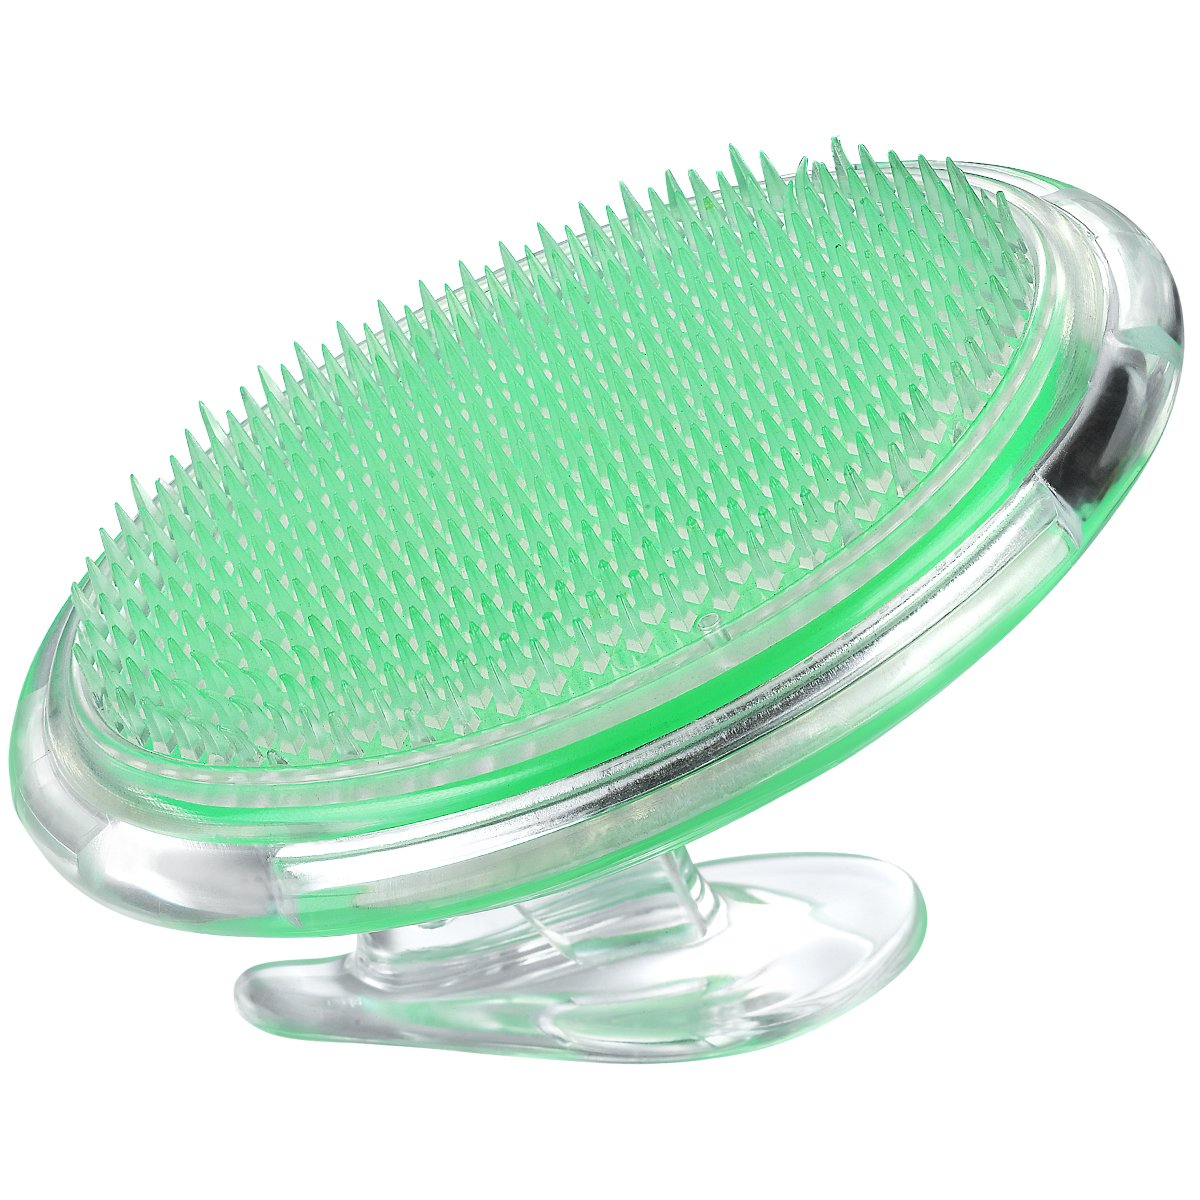 Coolife Ingrown Hair and Razor Bumps Treatment, Exfoliator Face Brush Fascia and Cellulite Blaster Acupressure Therapy Myofascial Release Tool Body Massager Brush for Men and Women - Green